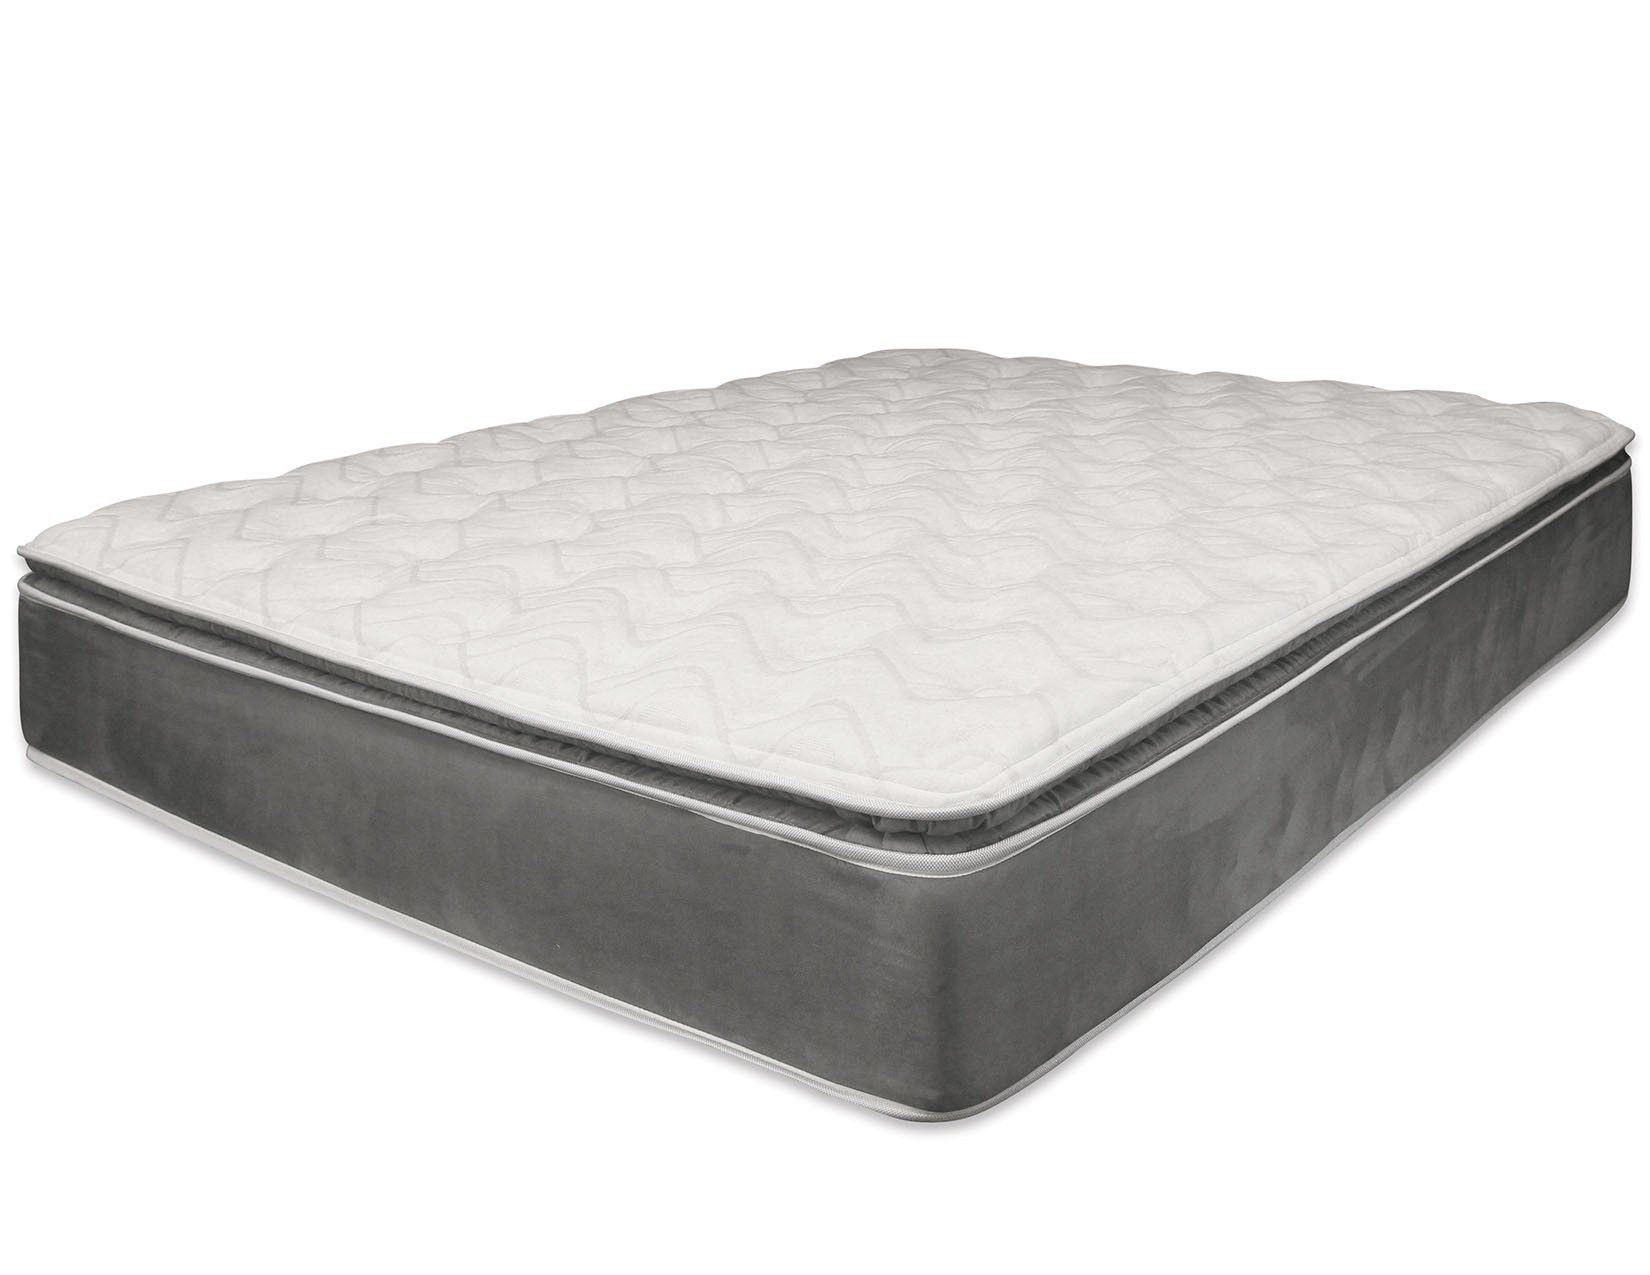 jade c king size mattress 29108features jade collectiongray color